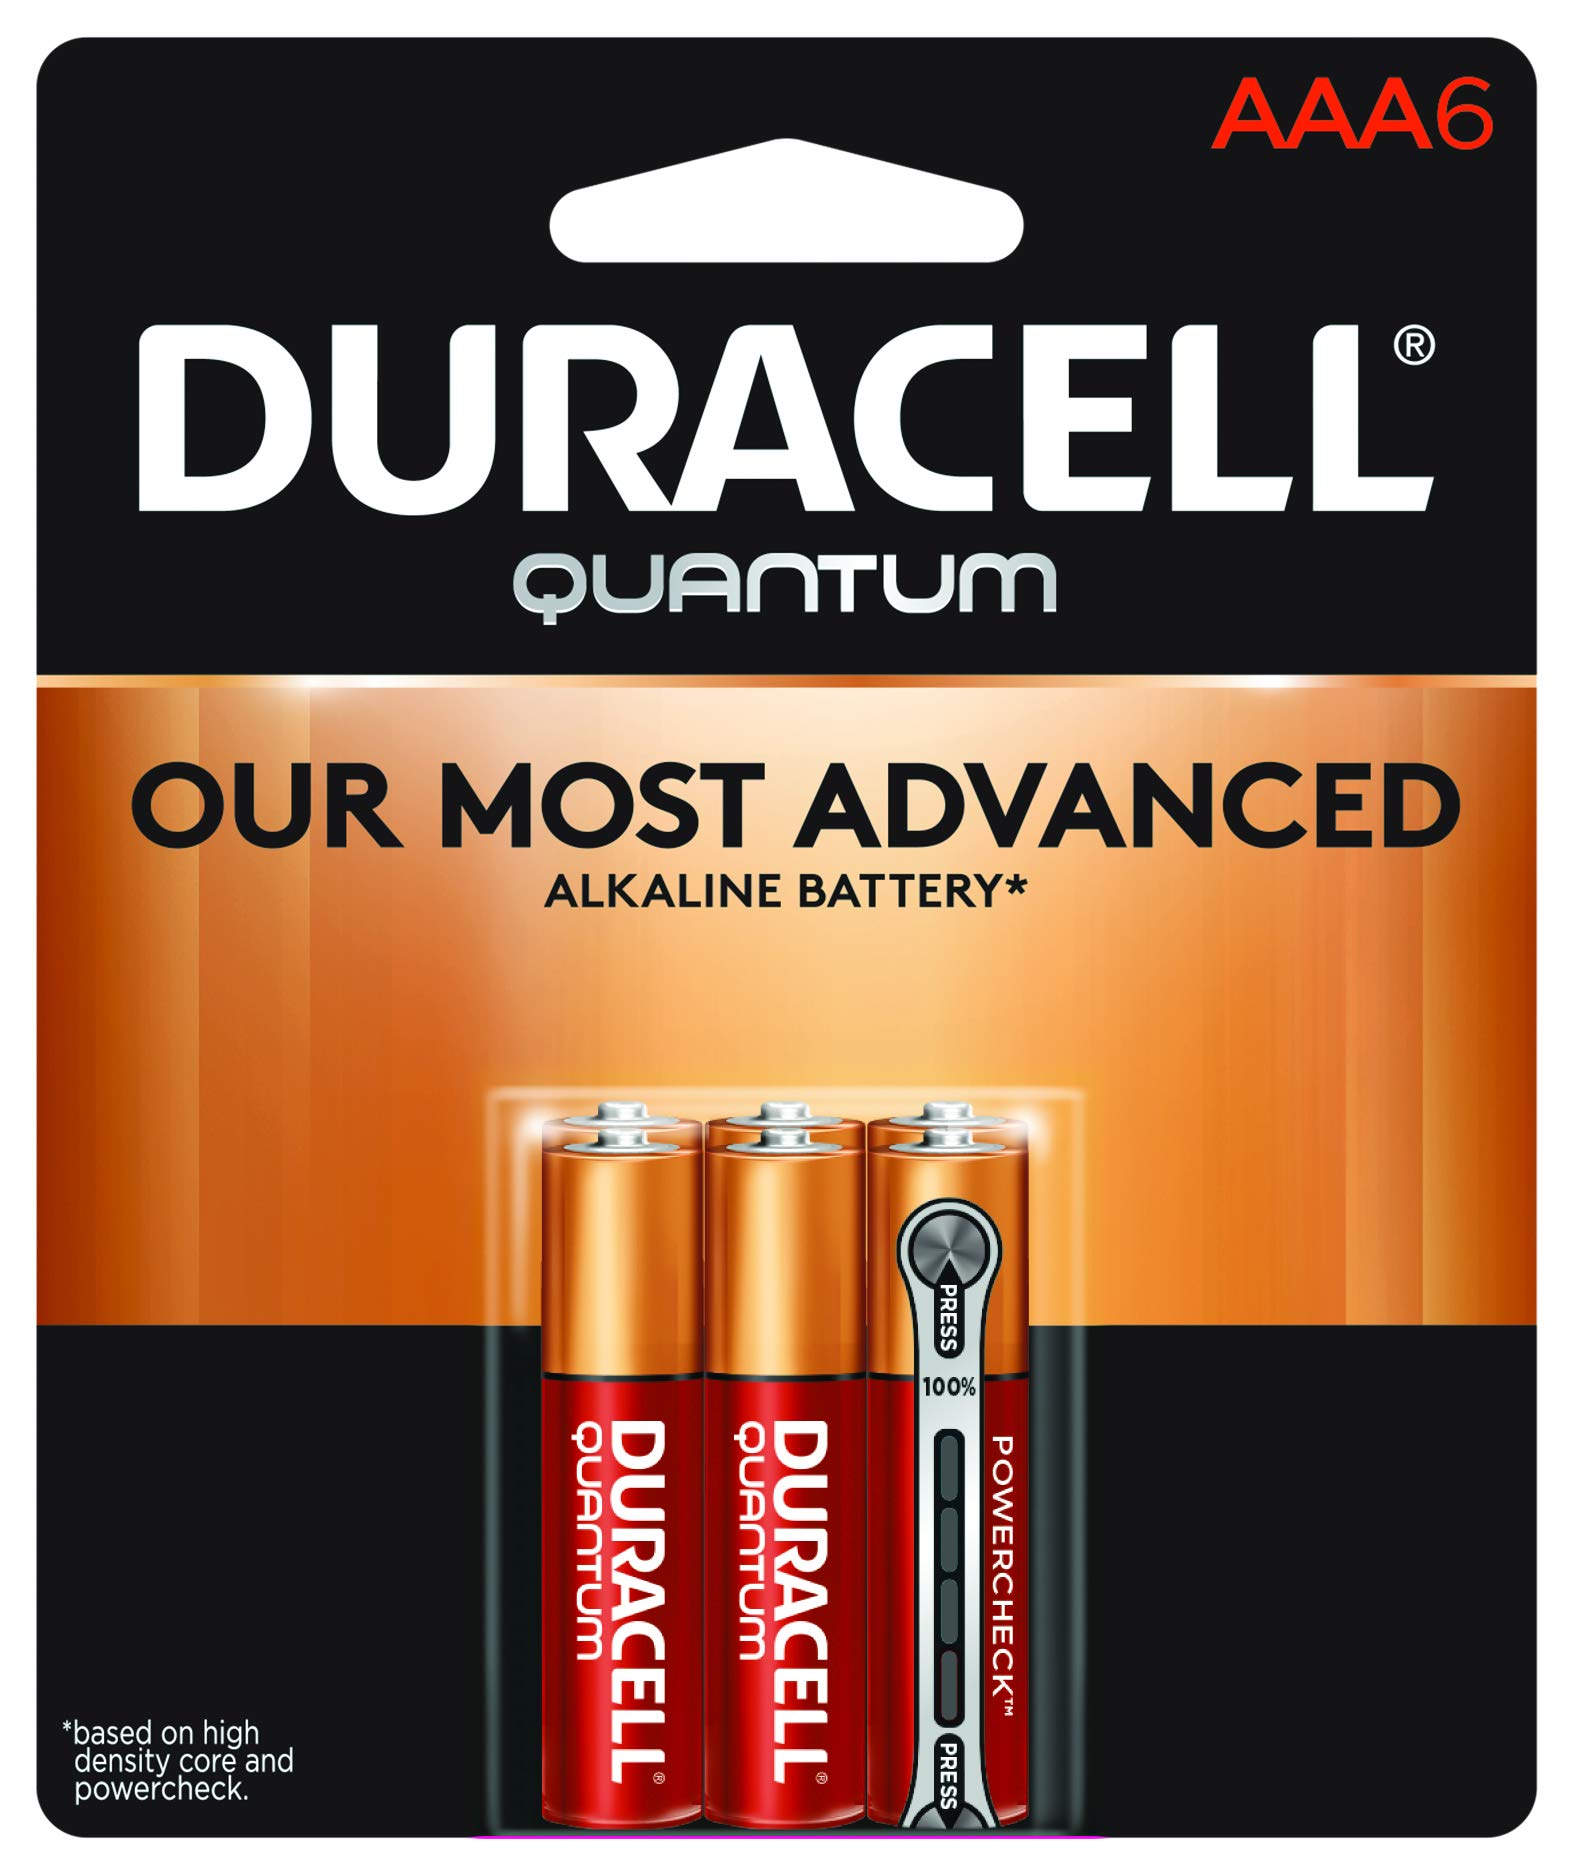 Duracell - Quantum AAA Alkaline Batteries - long lasting, all-purpose Double A battery for household and business - 6 count